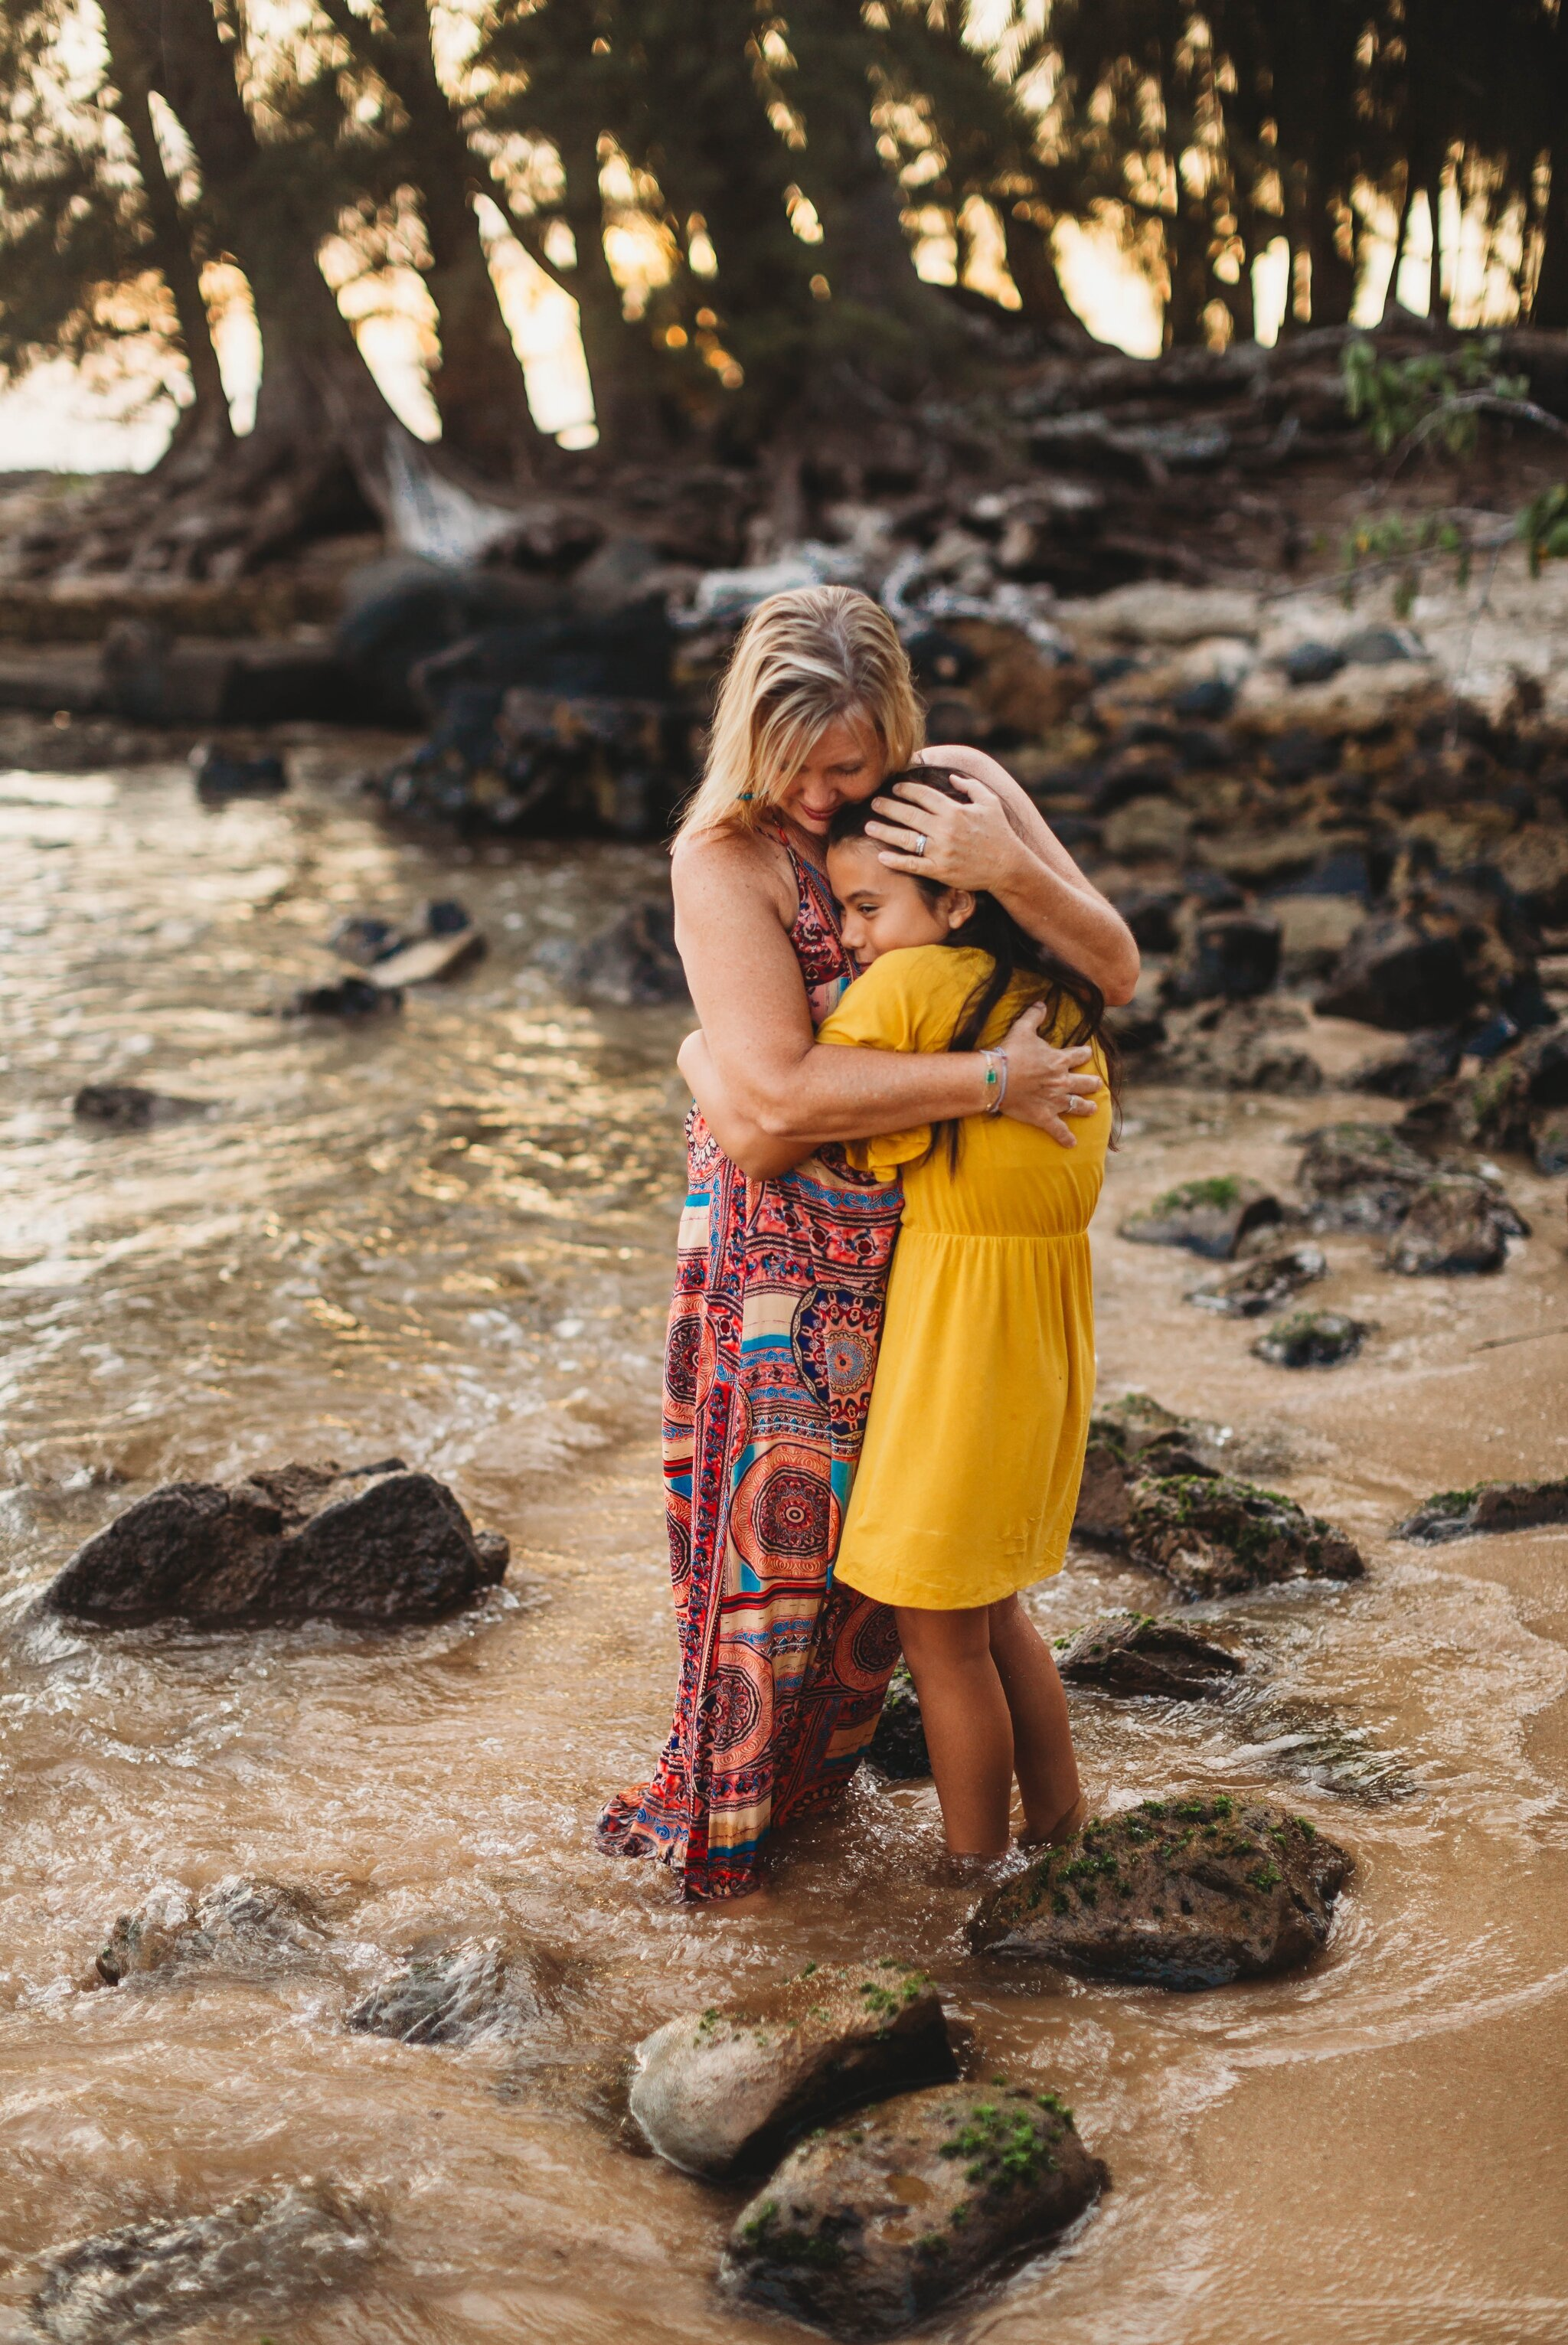 Beach Family Photography Session in Haleiwa, Oahu, Hawaii - North Shore Photographer